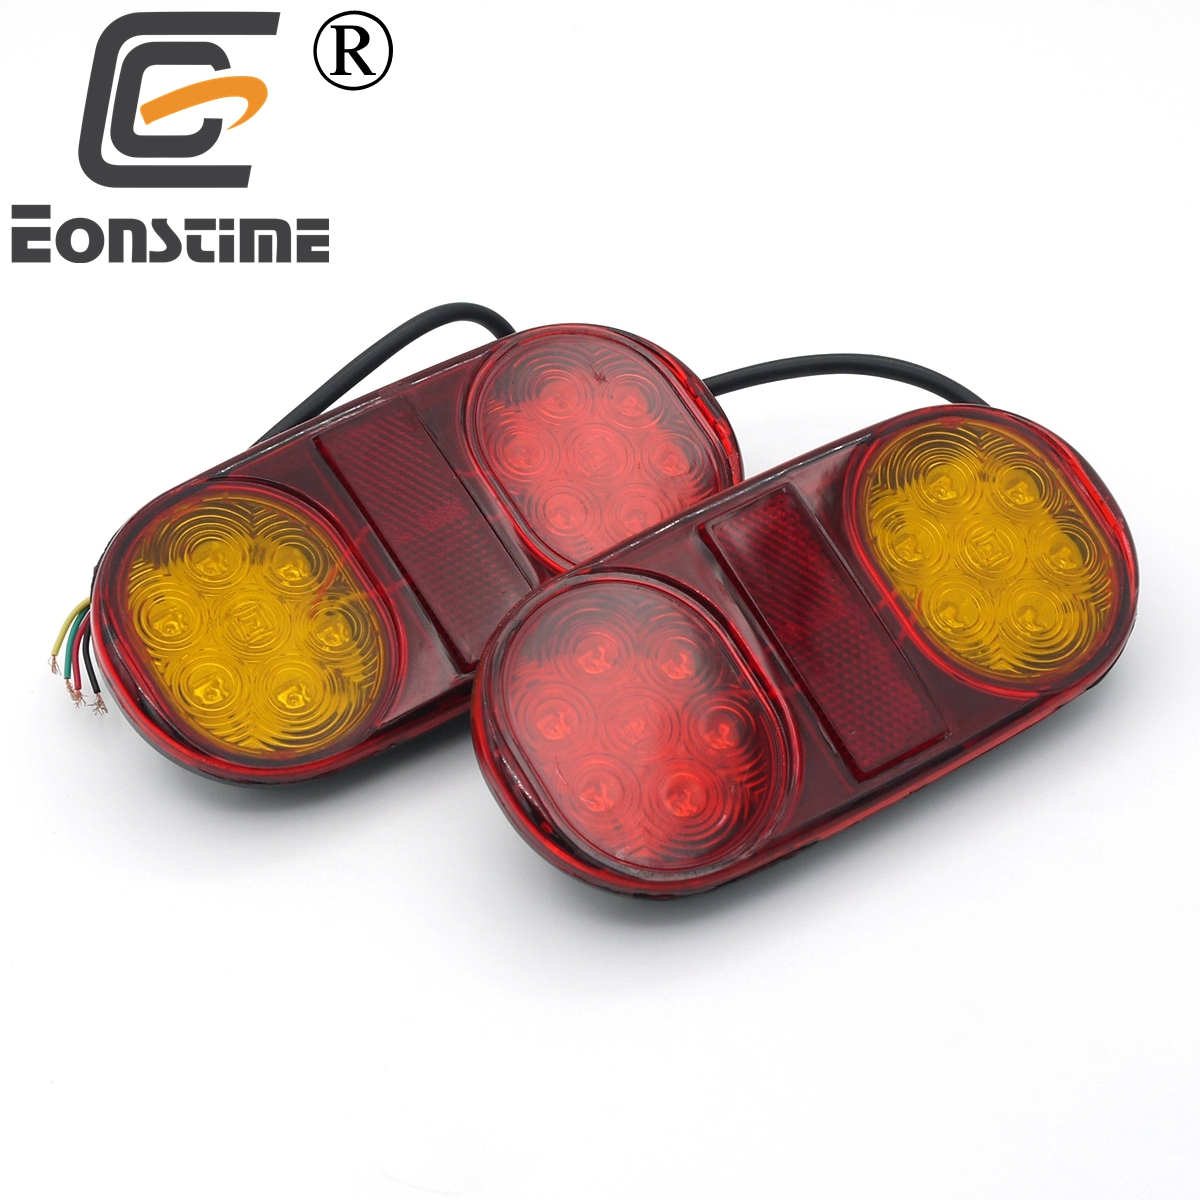 Eonstime 2pcs 14 Leds 12V/24V Car LED Caravan Truck Lights Boat Trailer Lamp Stop Tail Brake Light Lamp Trailer Taillight